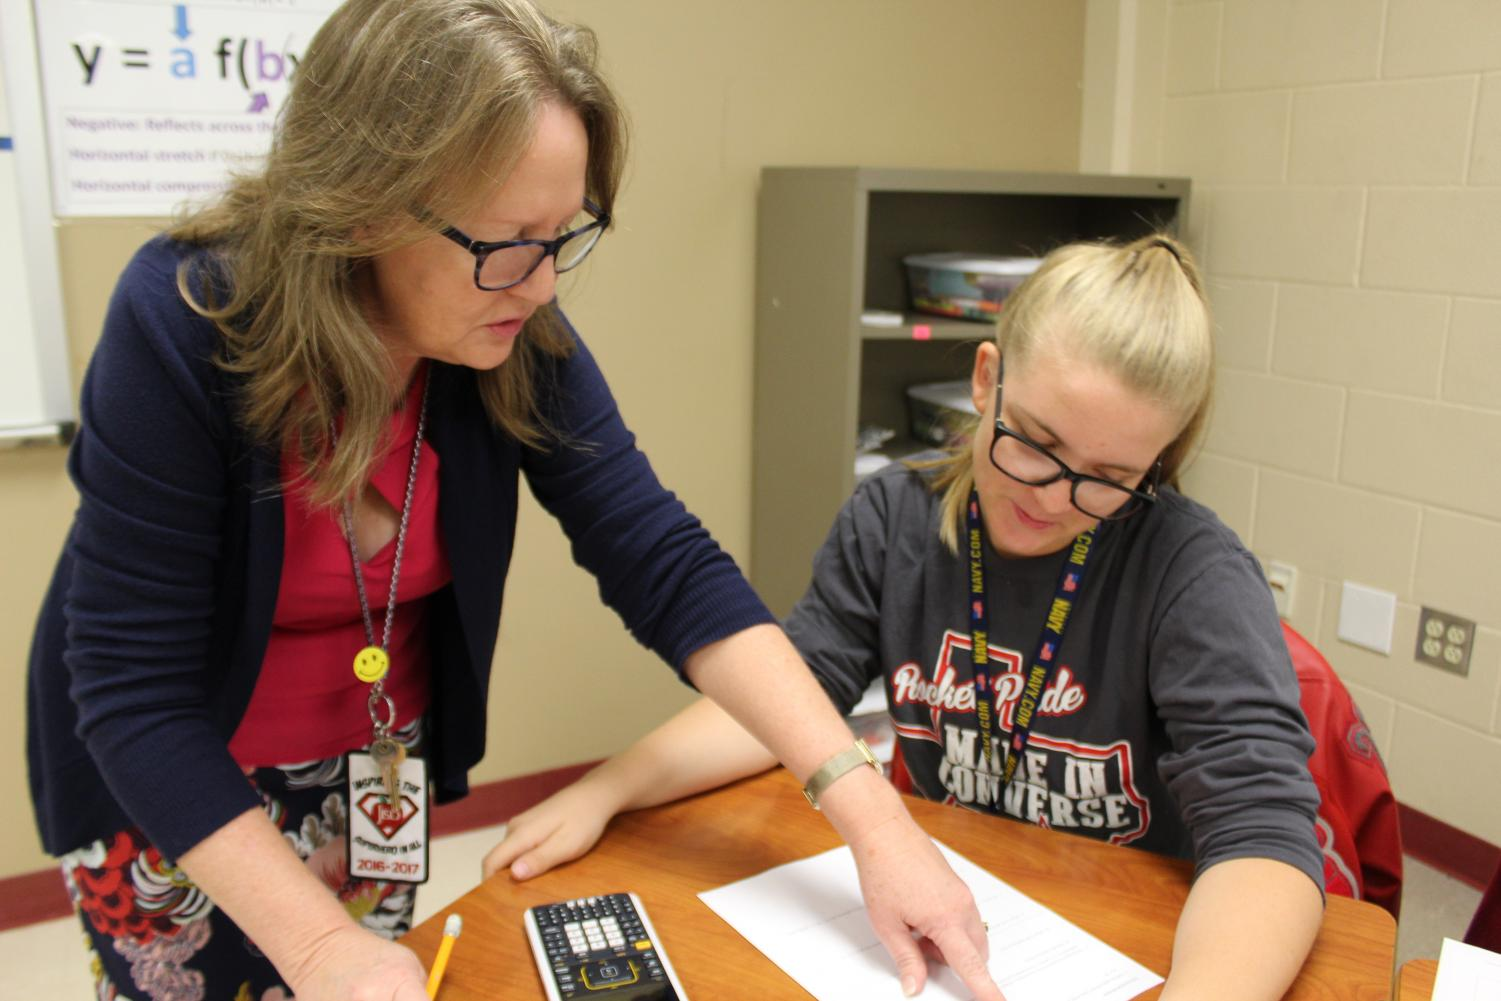 Mrs. Brenda Milam helps a student with her classwork during one of her AP Calculus periods. Milam has been teaching at Judson High School for 32 years.